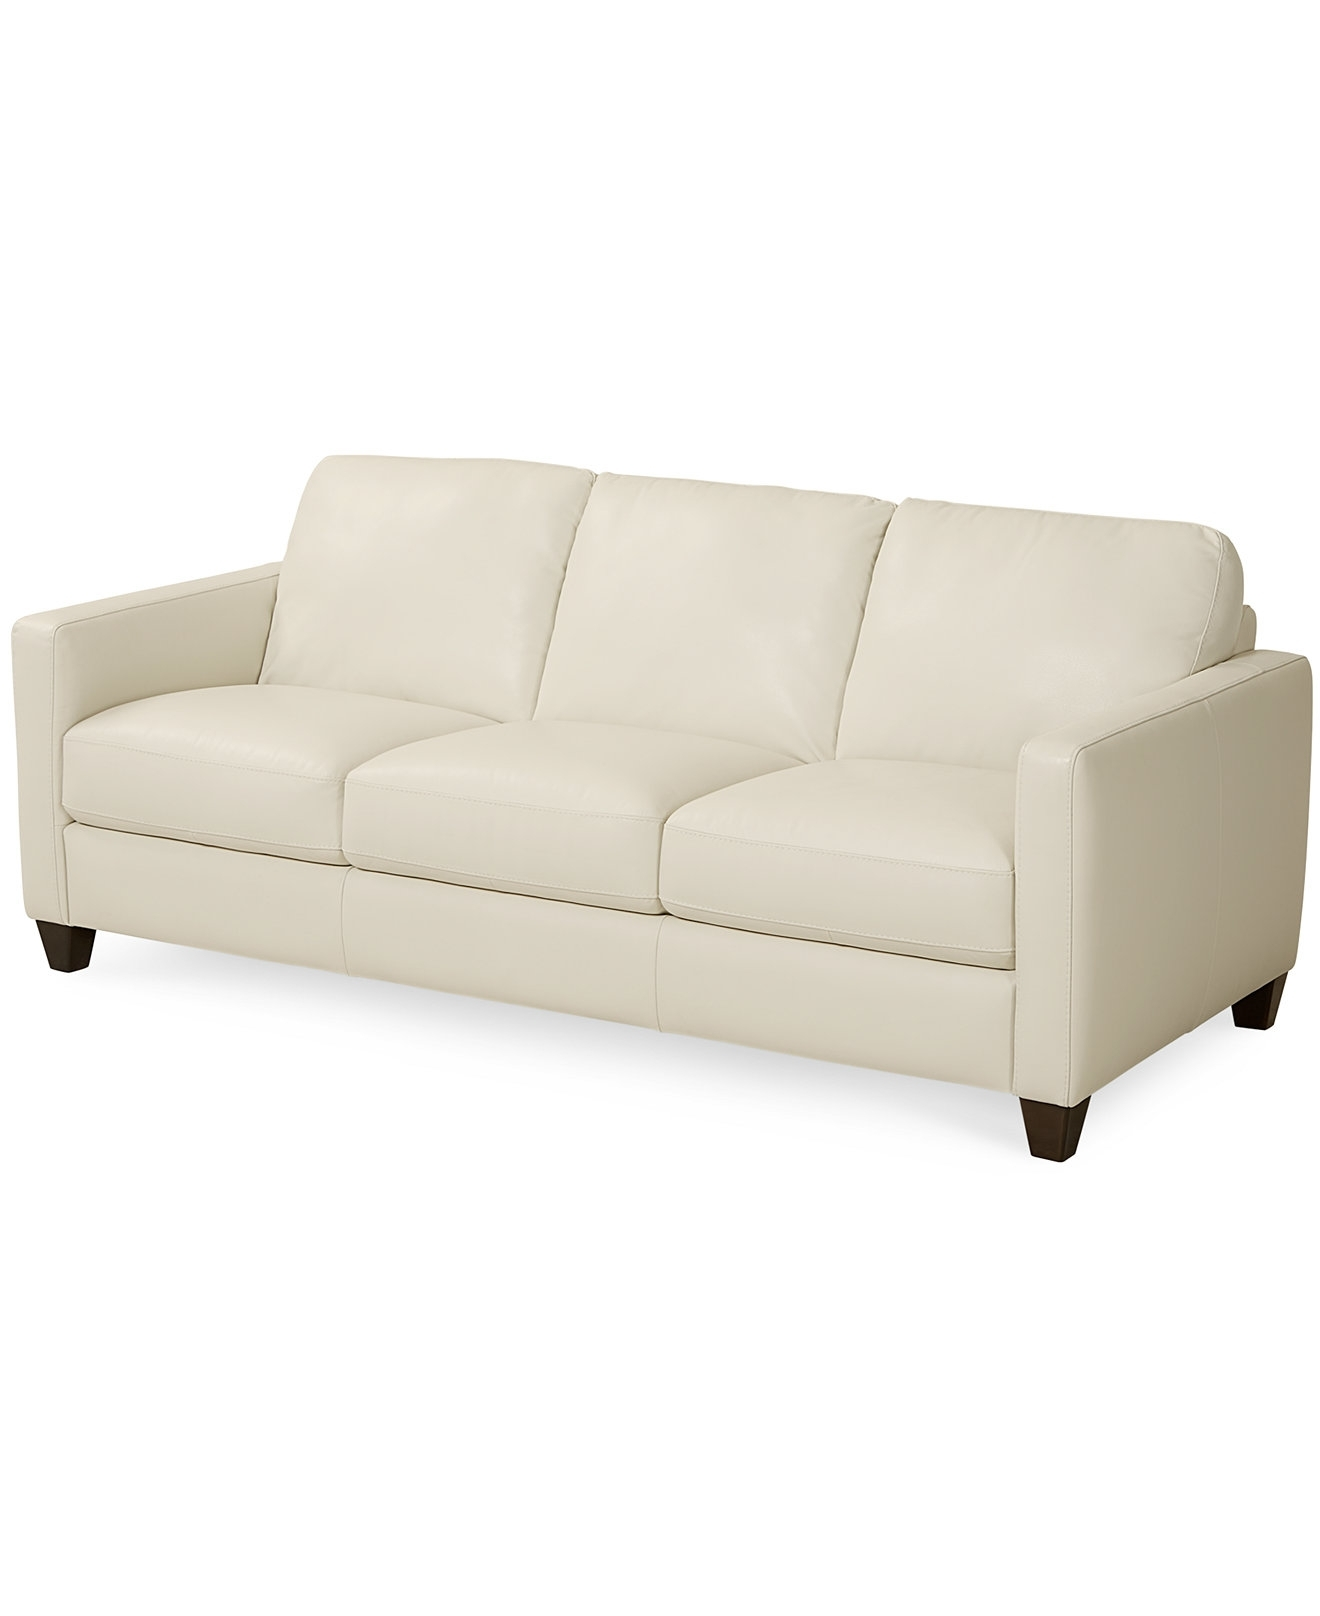 Most Up To Date Macys Leather Sofa – Mforum With Regard To Macys Leather Sofas (View 14 of 15)